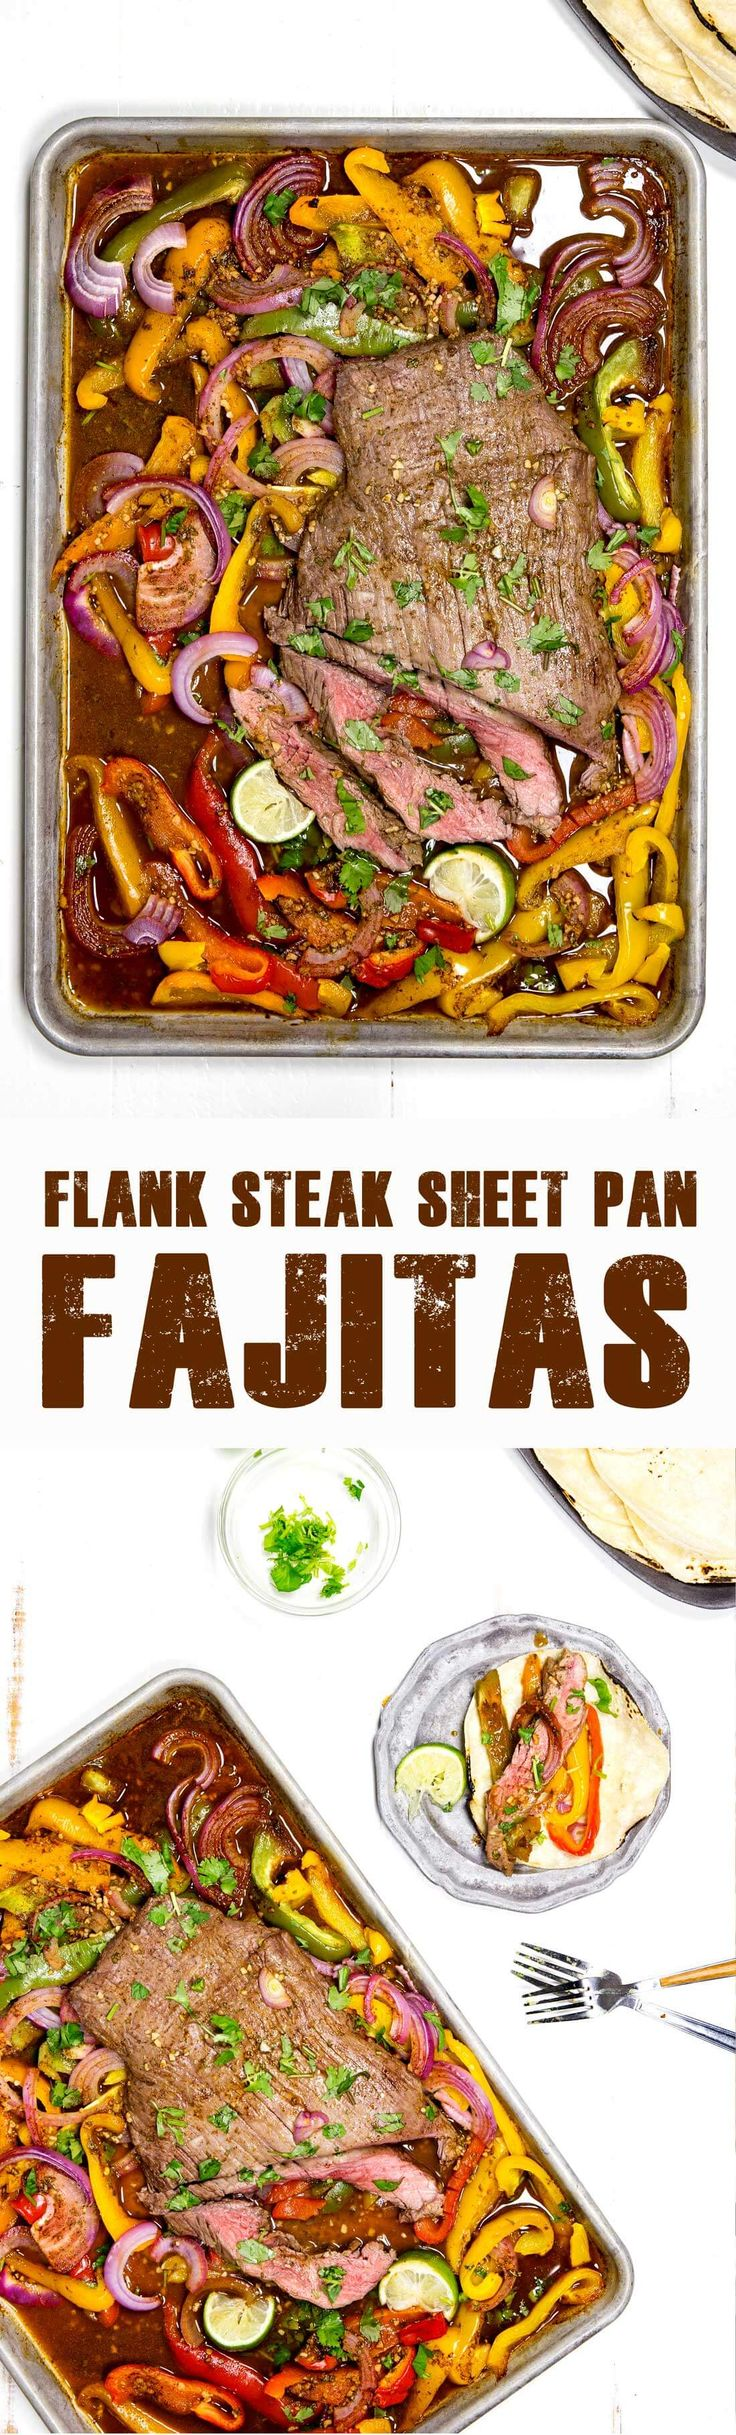 Sheet pan Flank Steak fajitas are tender, flavorful, low mess and huge appeal. My husband said they were the best fajitas he has ever eaten.